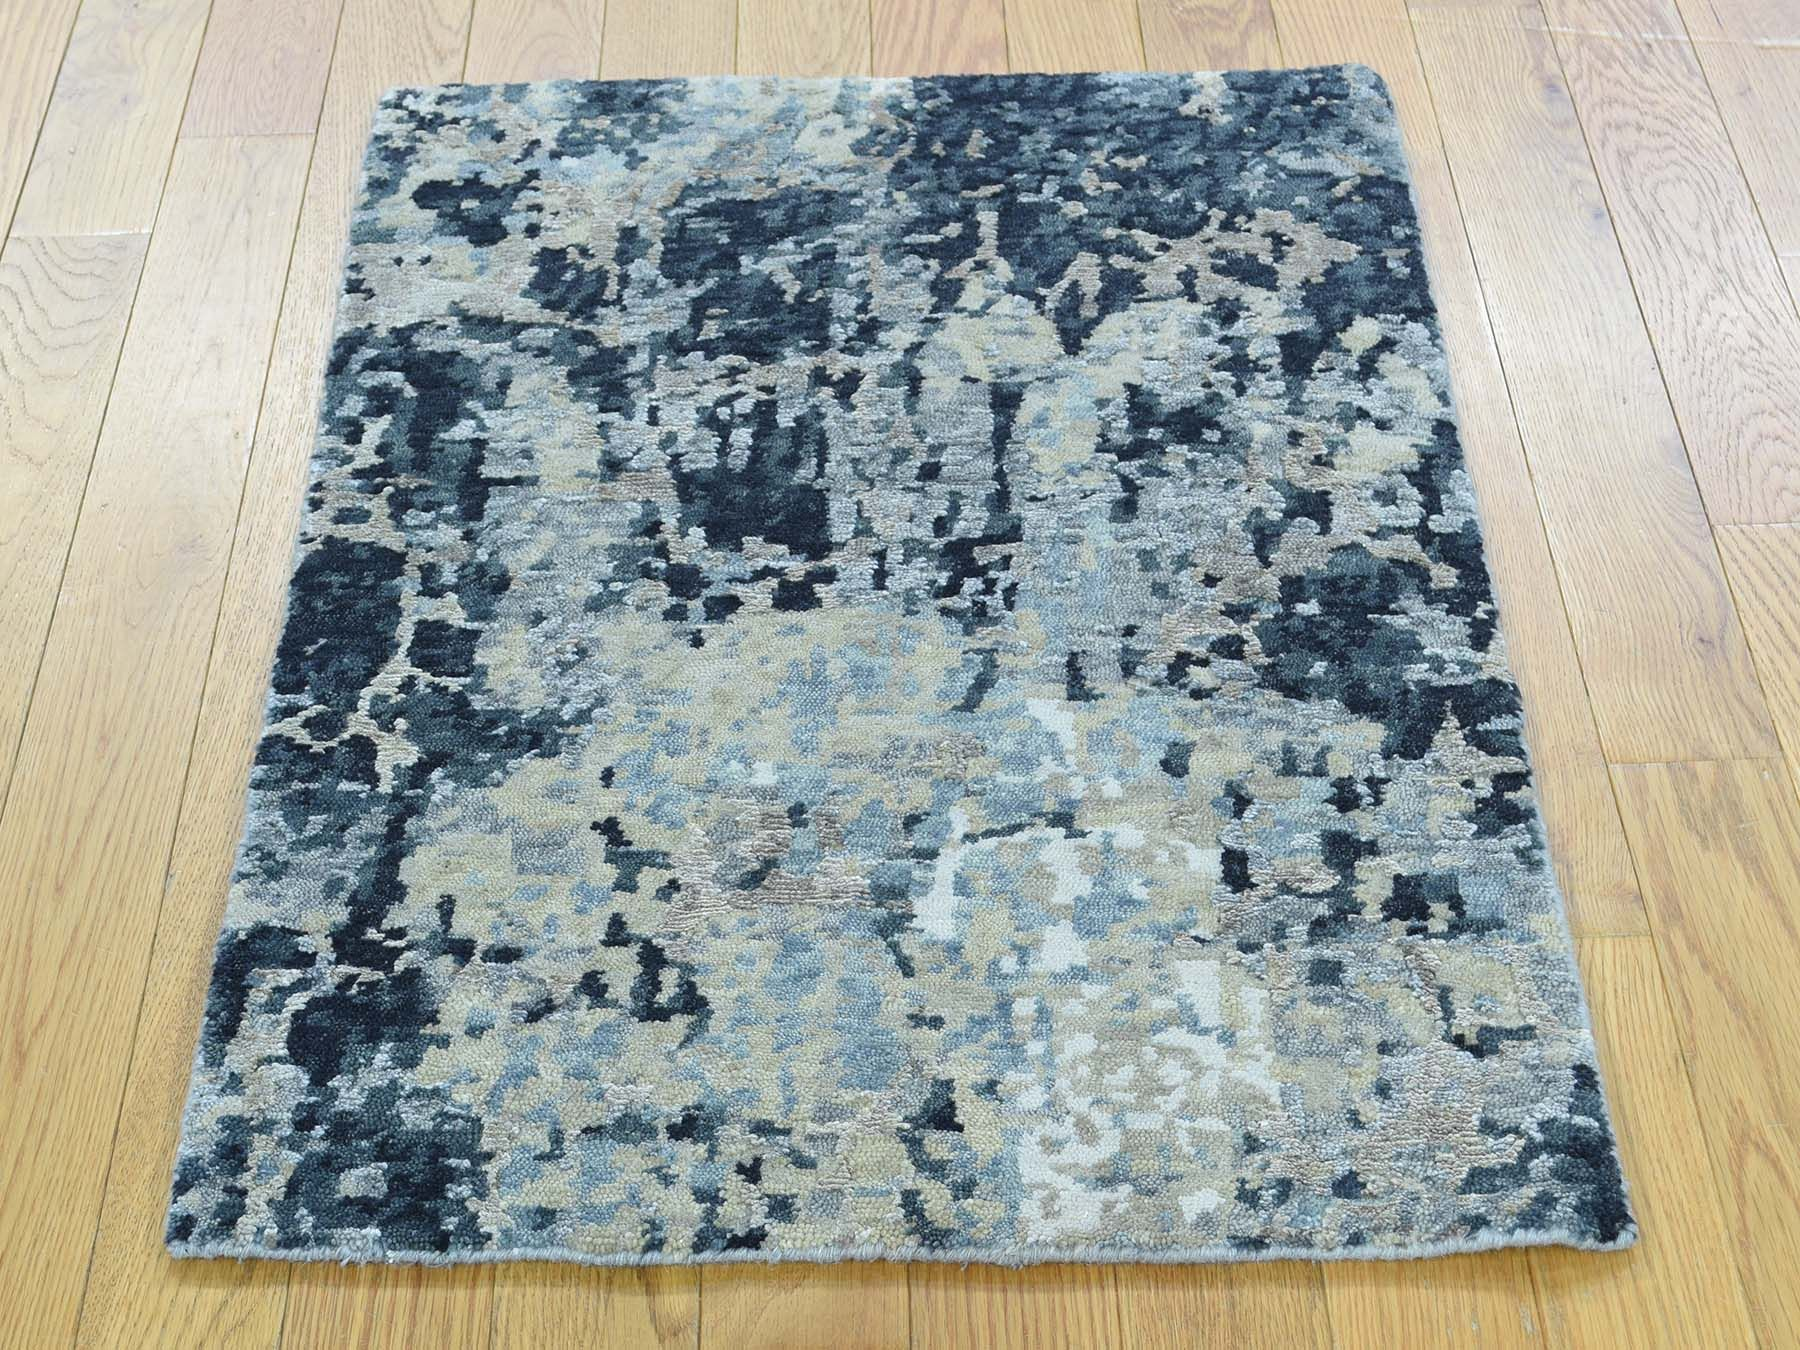 2 X3 Hand Knotted Abstract Design Wool And Silk Modern Oriental Rug